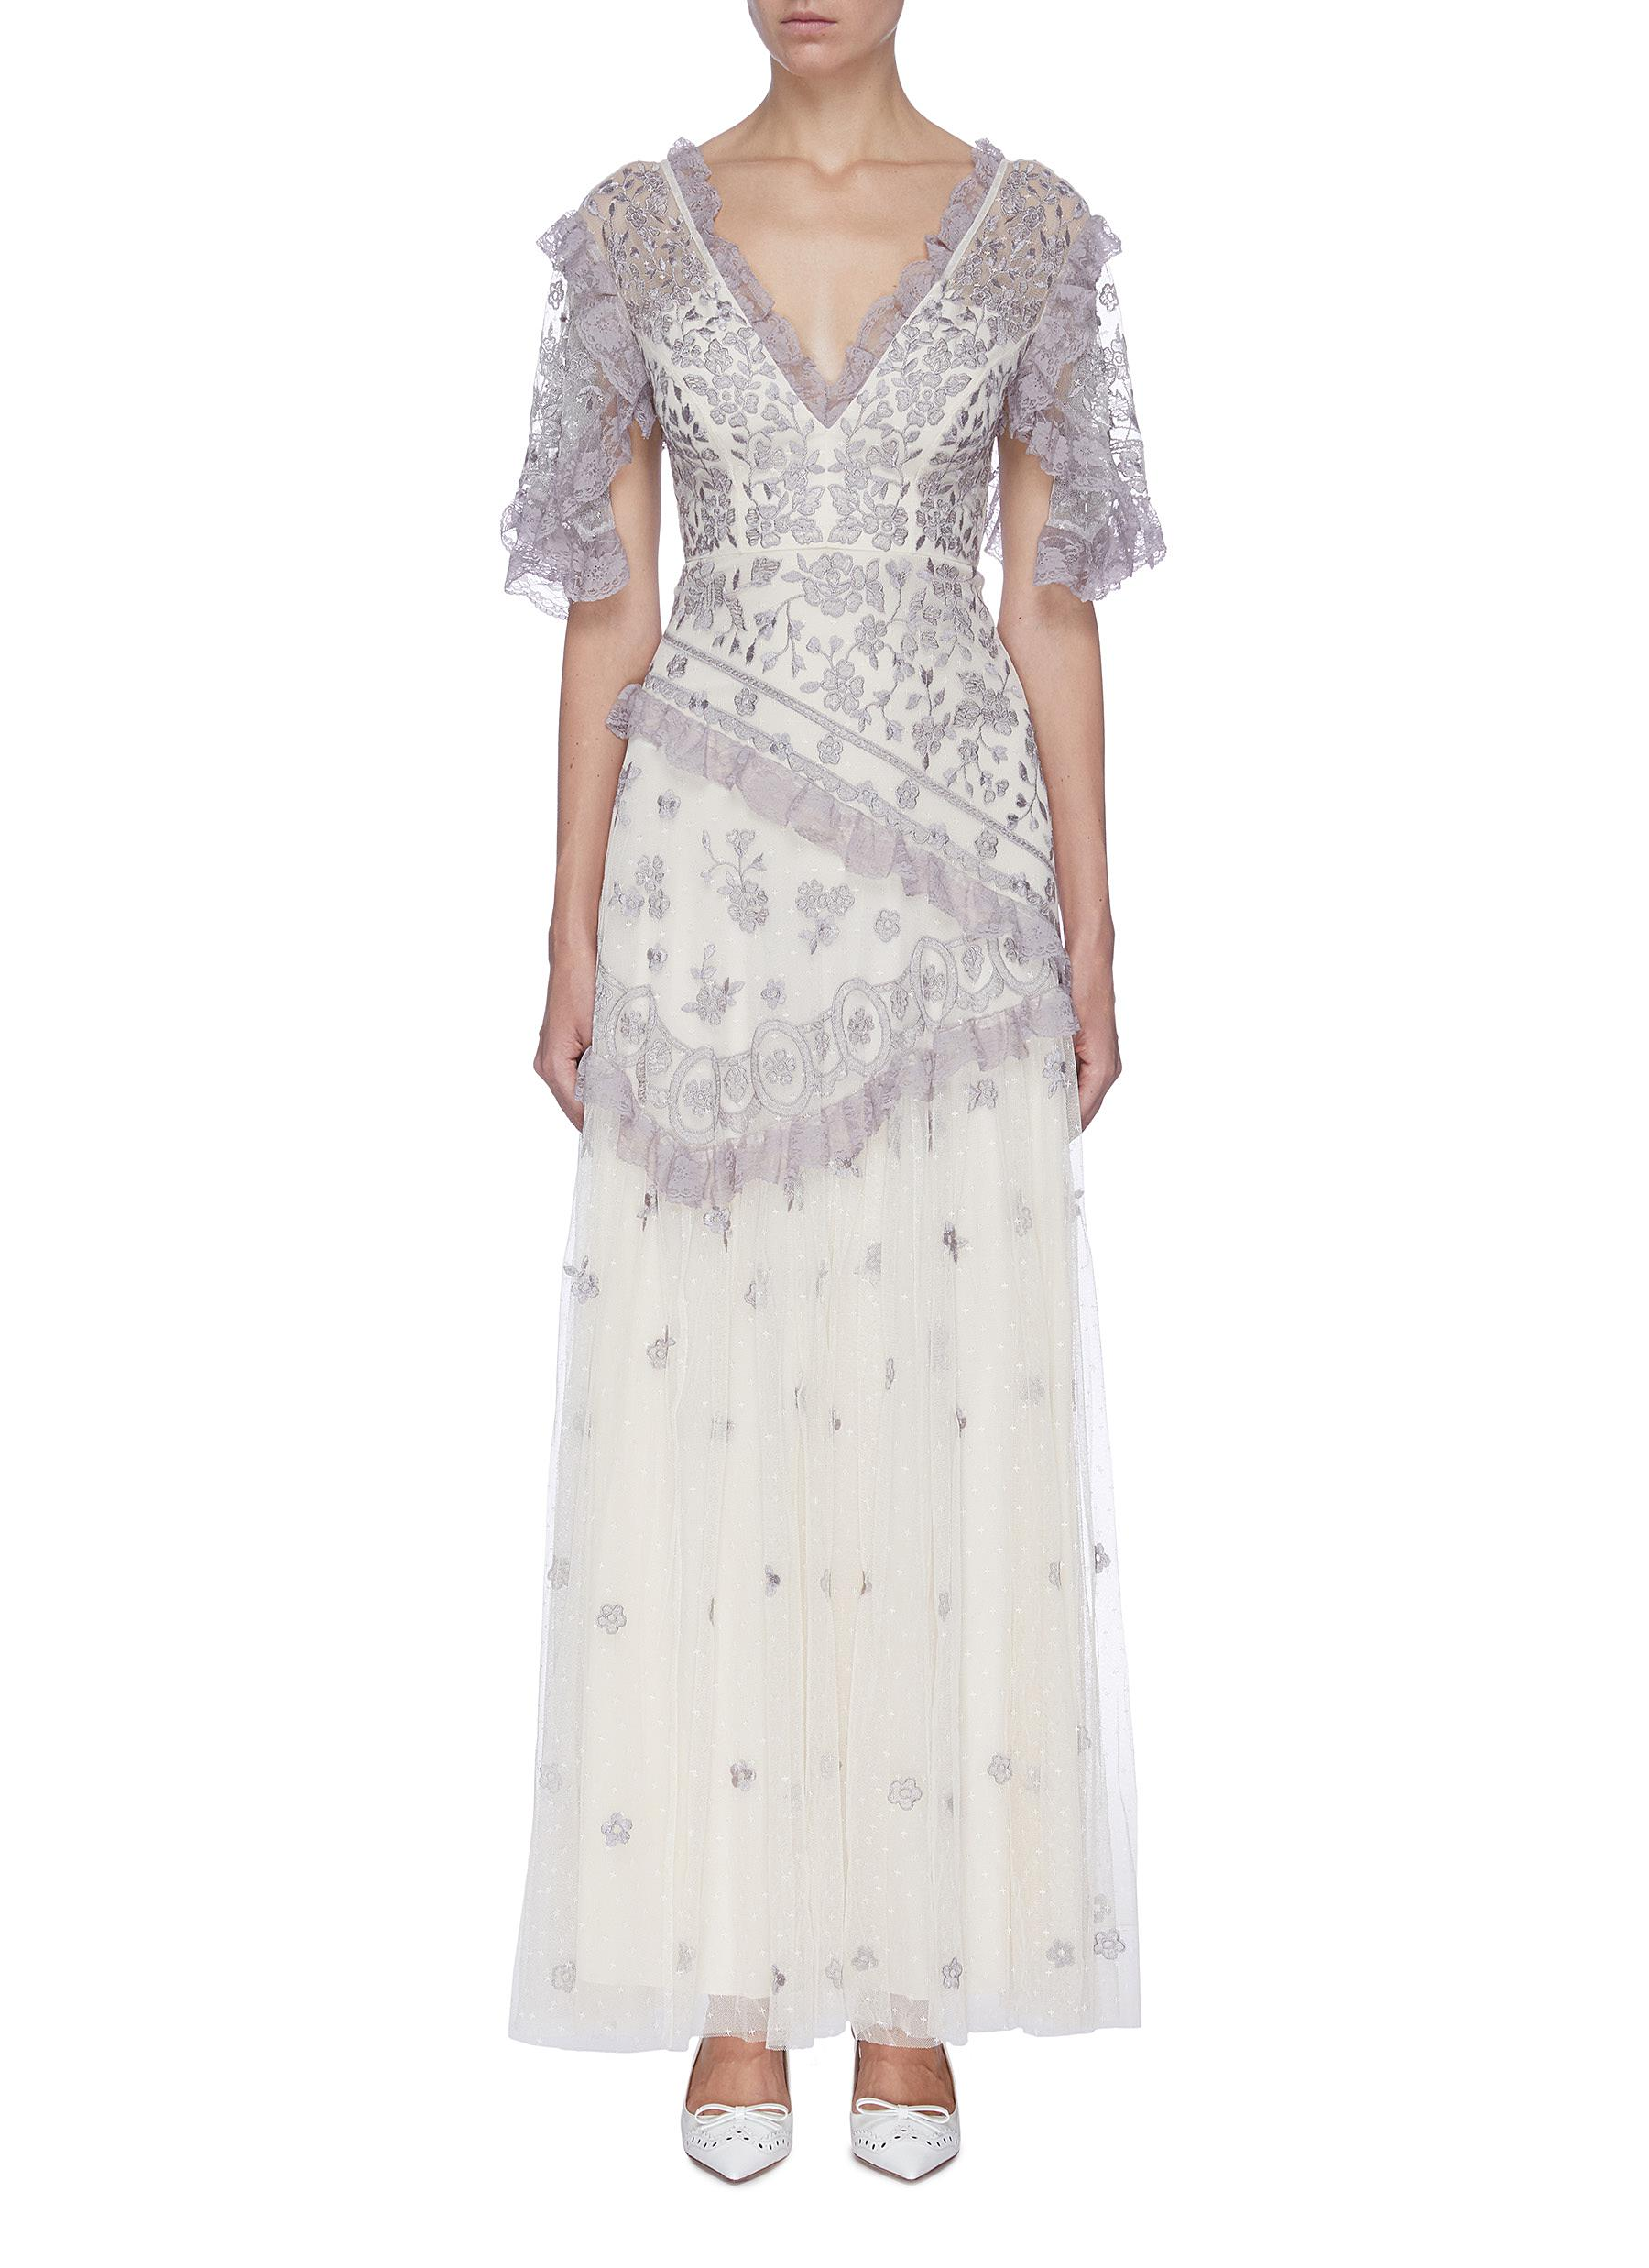 Buy Needle & Thread Dresses 'Elsa' lace embroidered floral sheer tulle gown